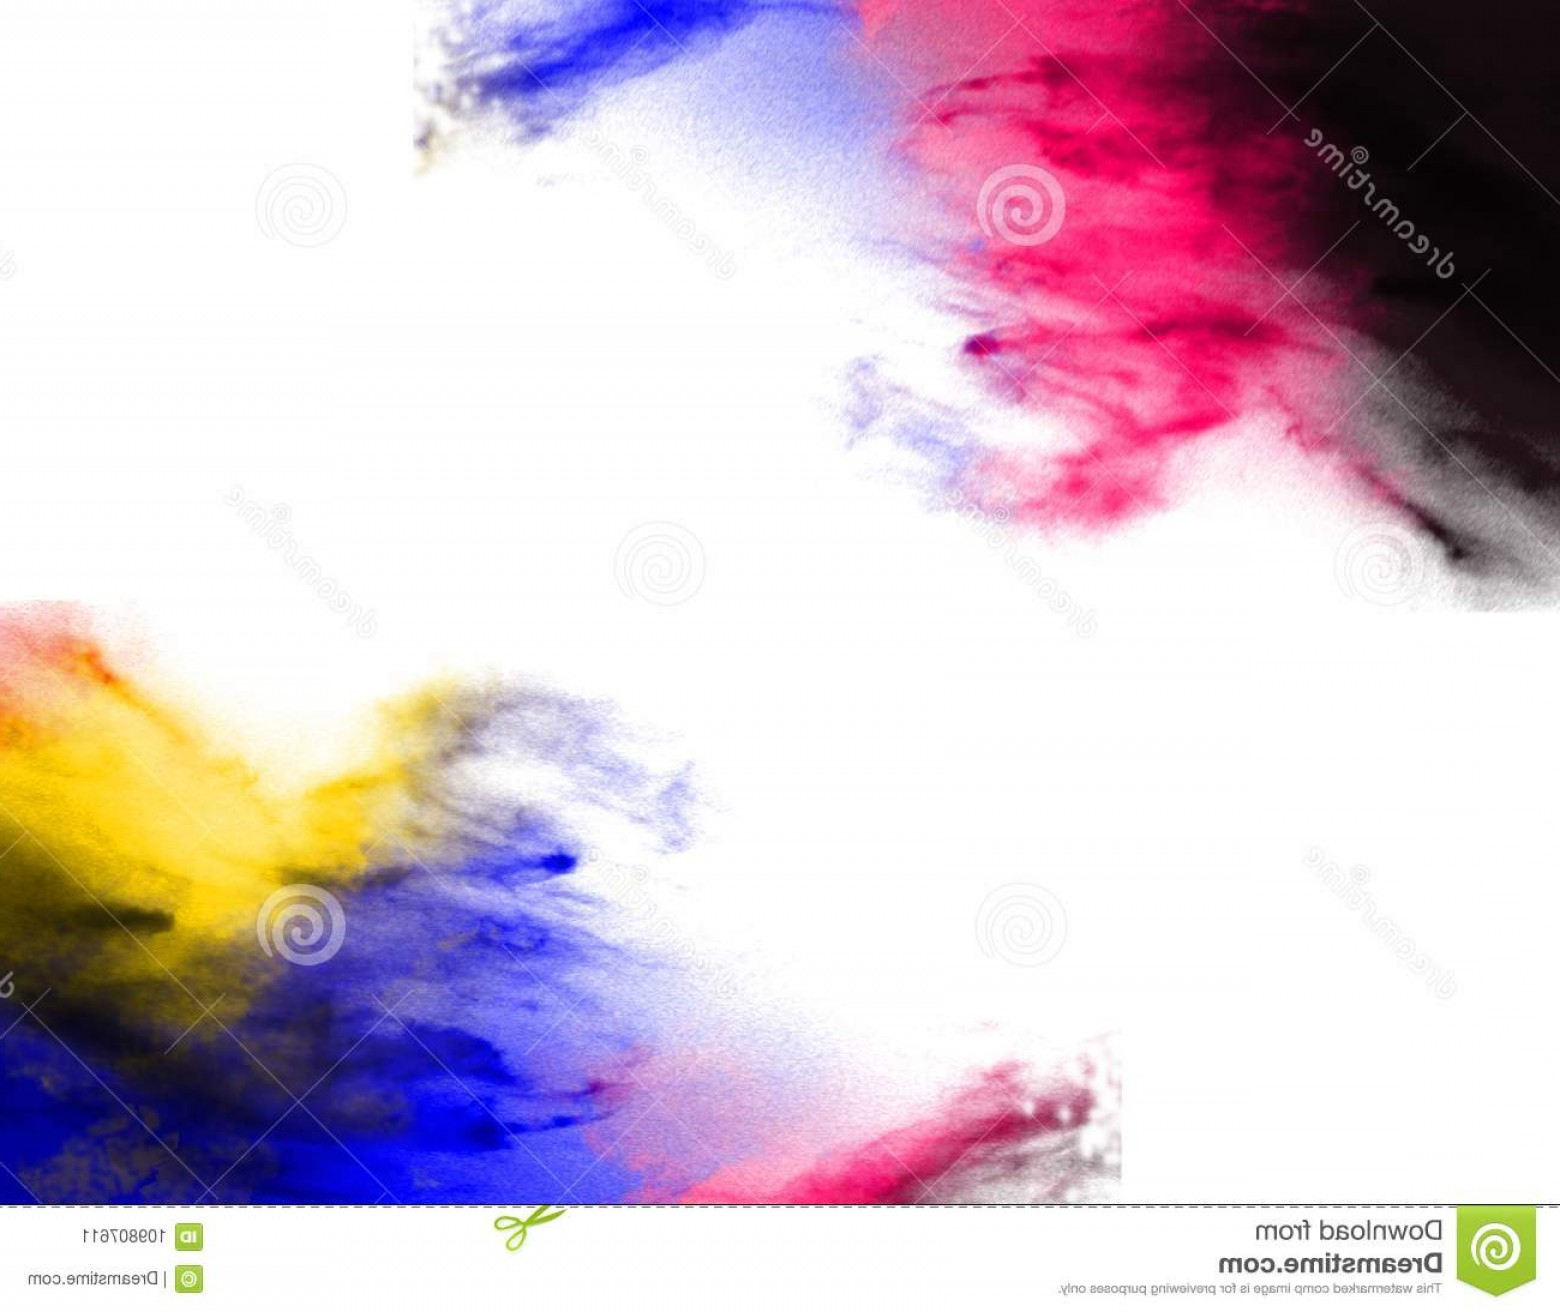 Abstract Vector Backgrounds For Photoshop: Cloudy Effect Background Colorful Blue Pink Yellow Black Abstract Unique Sparkle Photoshop Techniques To Create Texture Image